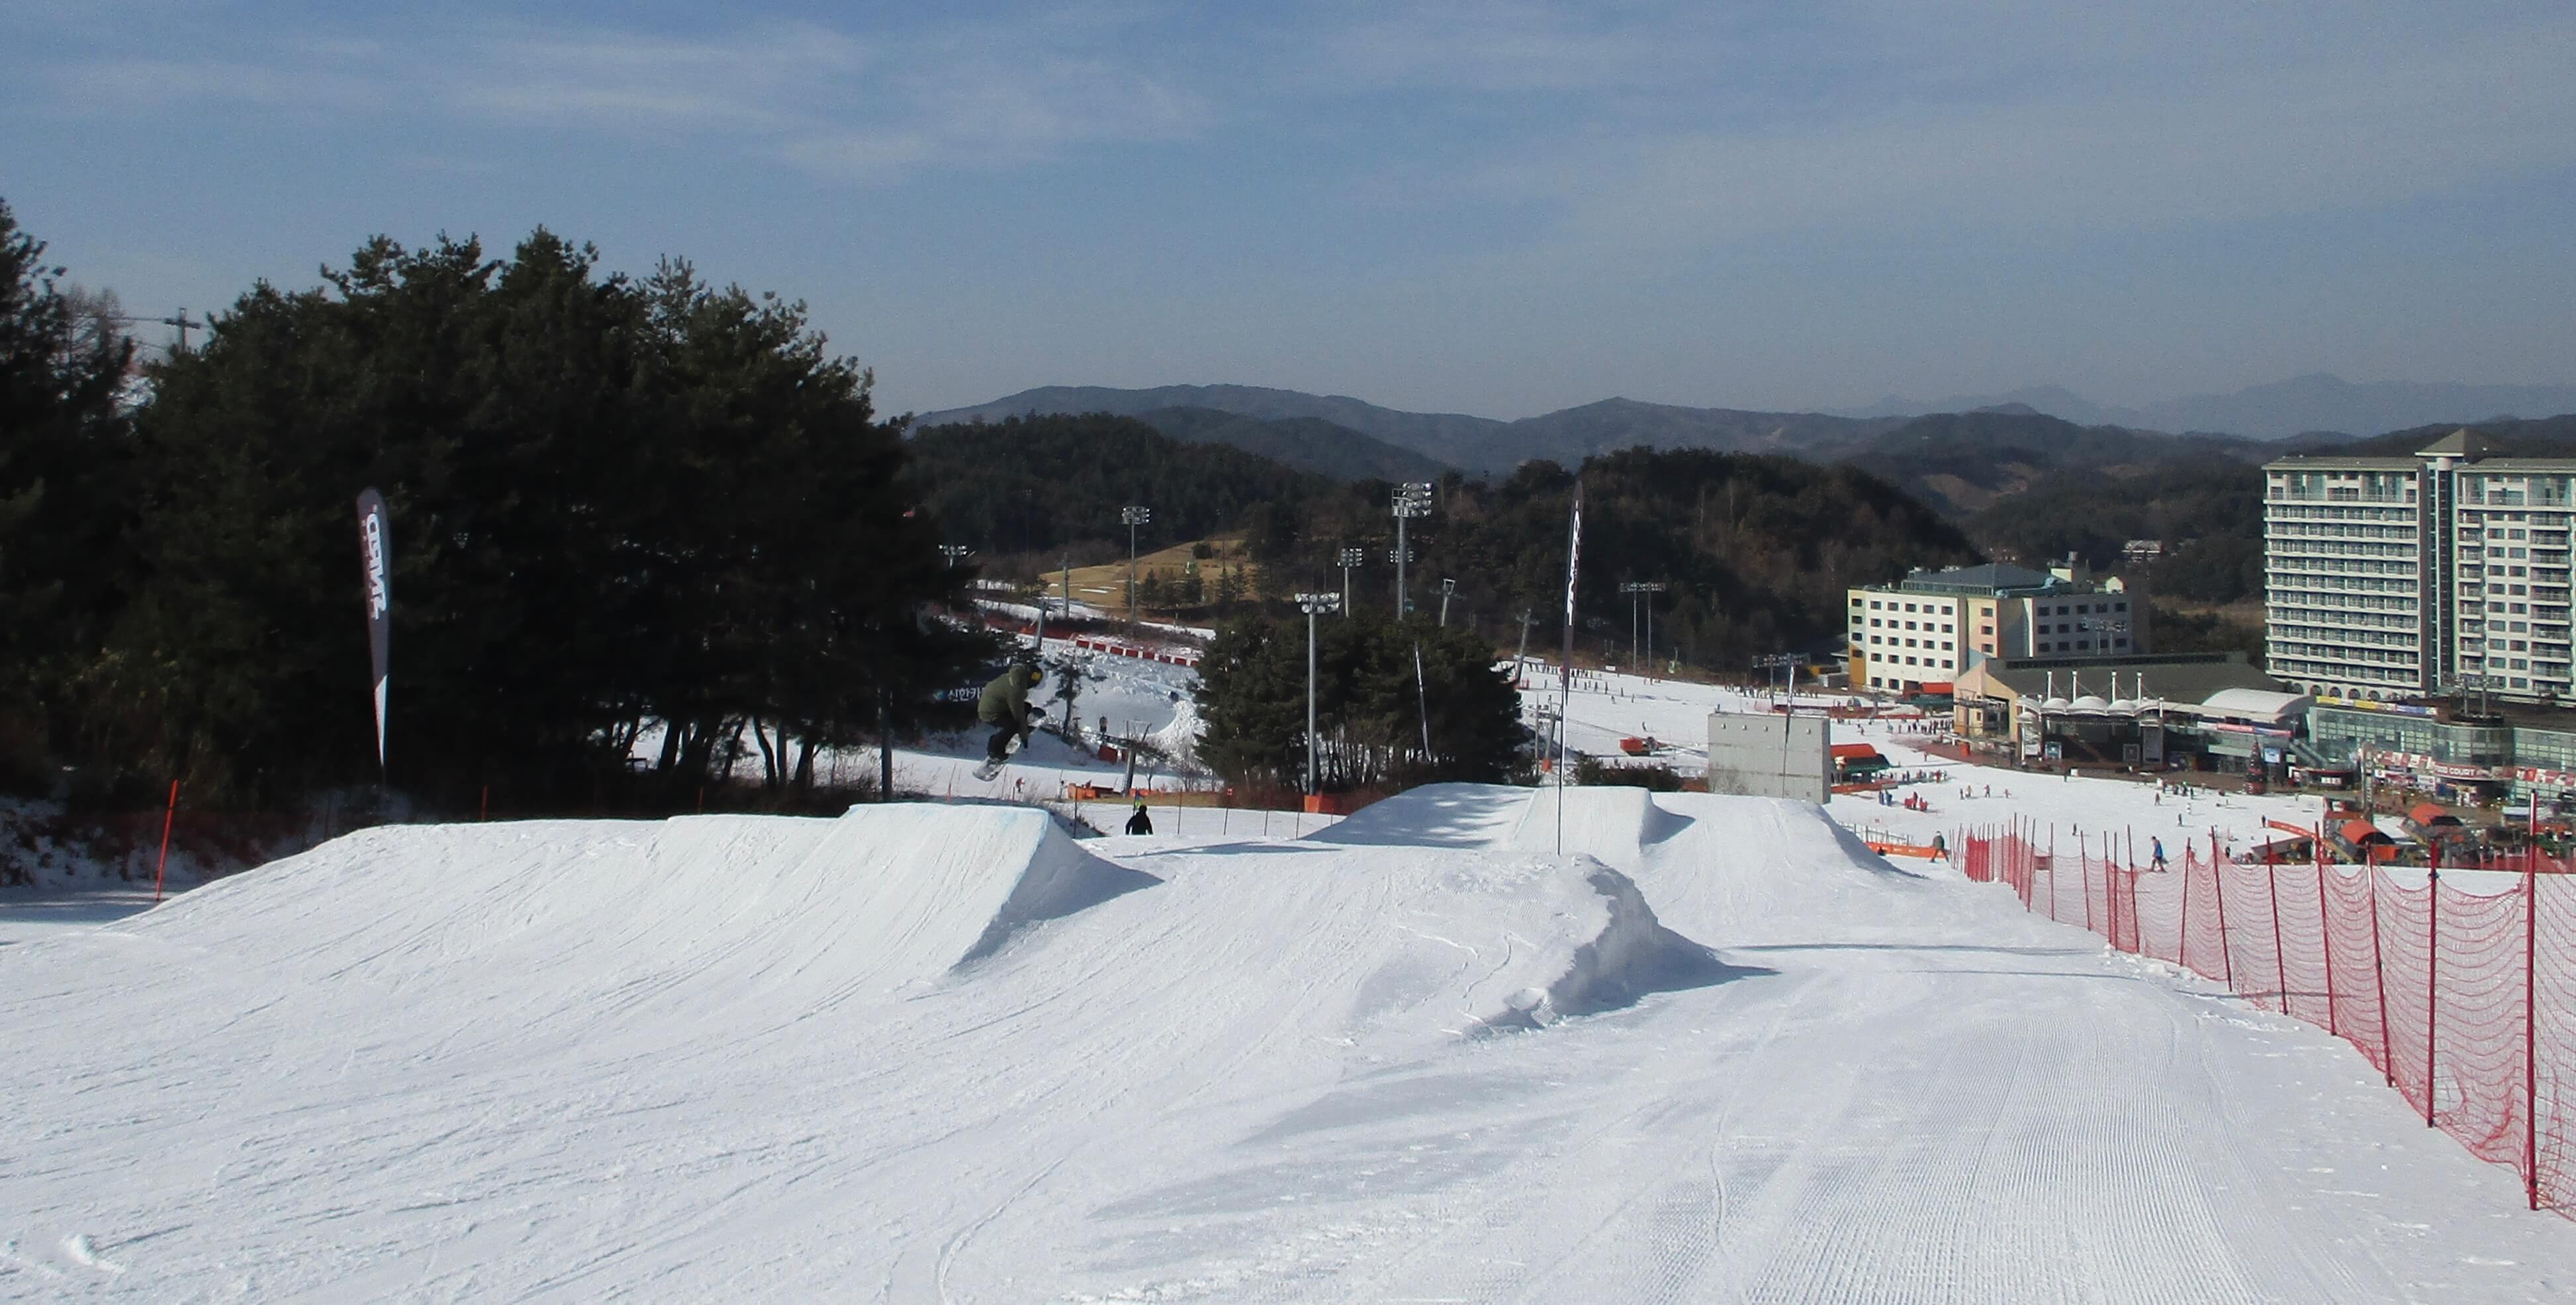 Snowboard jumps at Welli Hilli Park, Korea